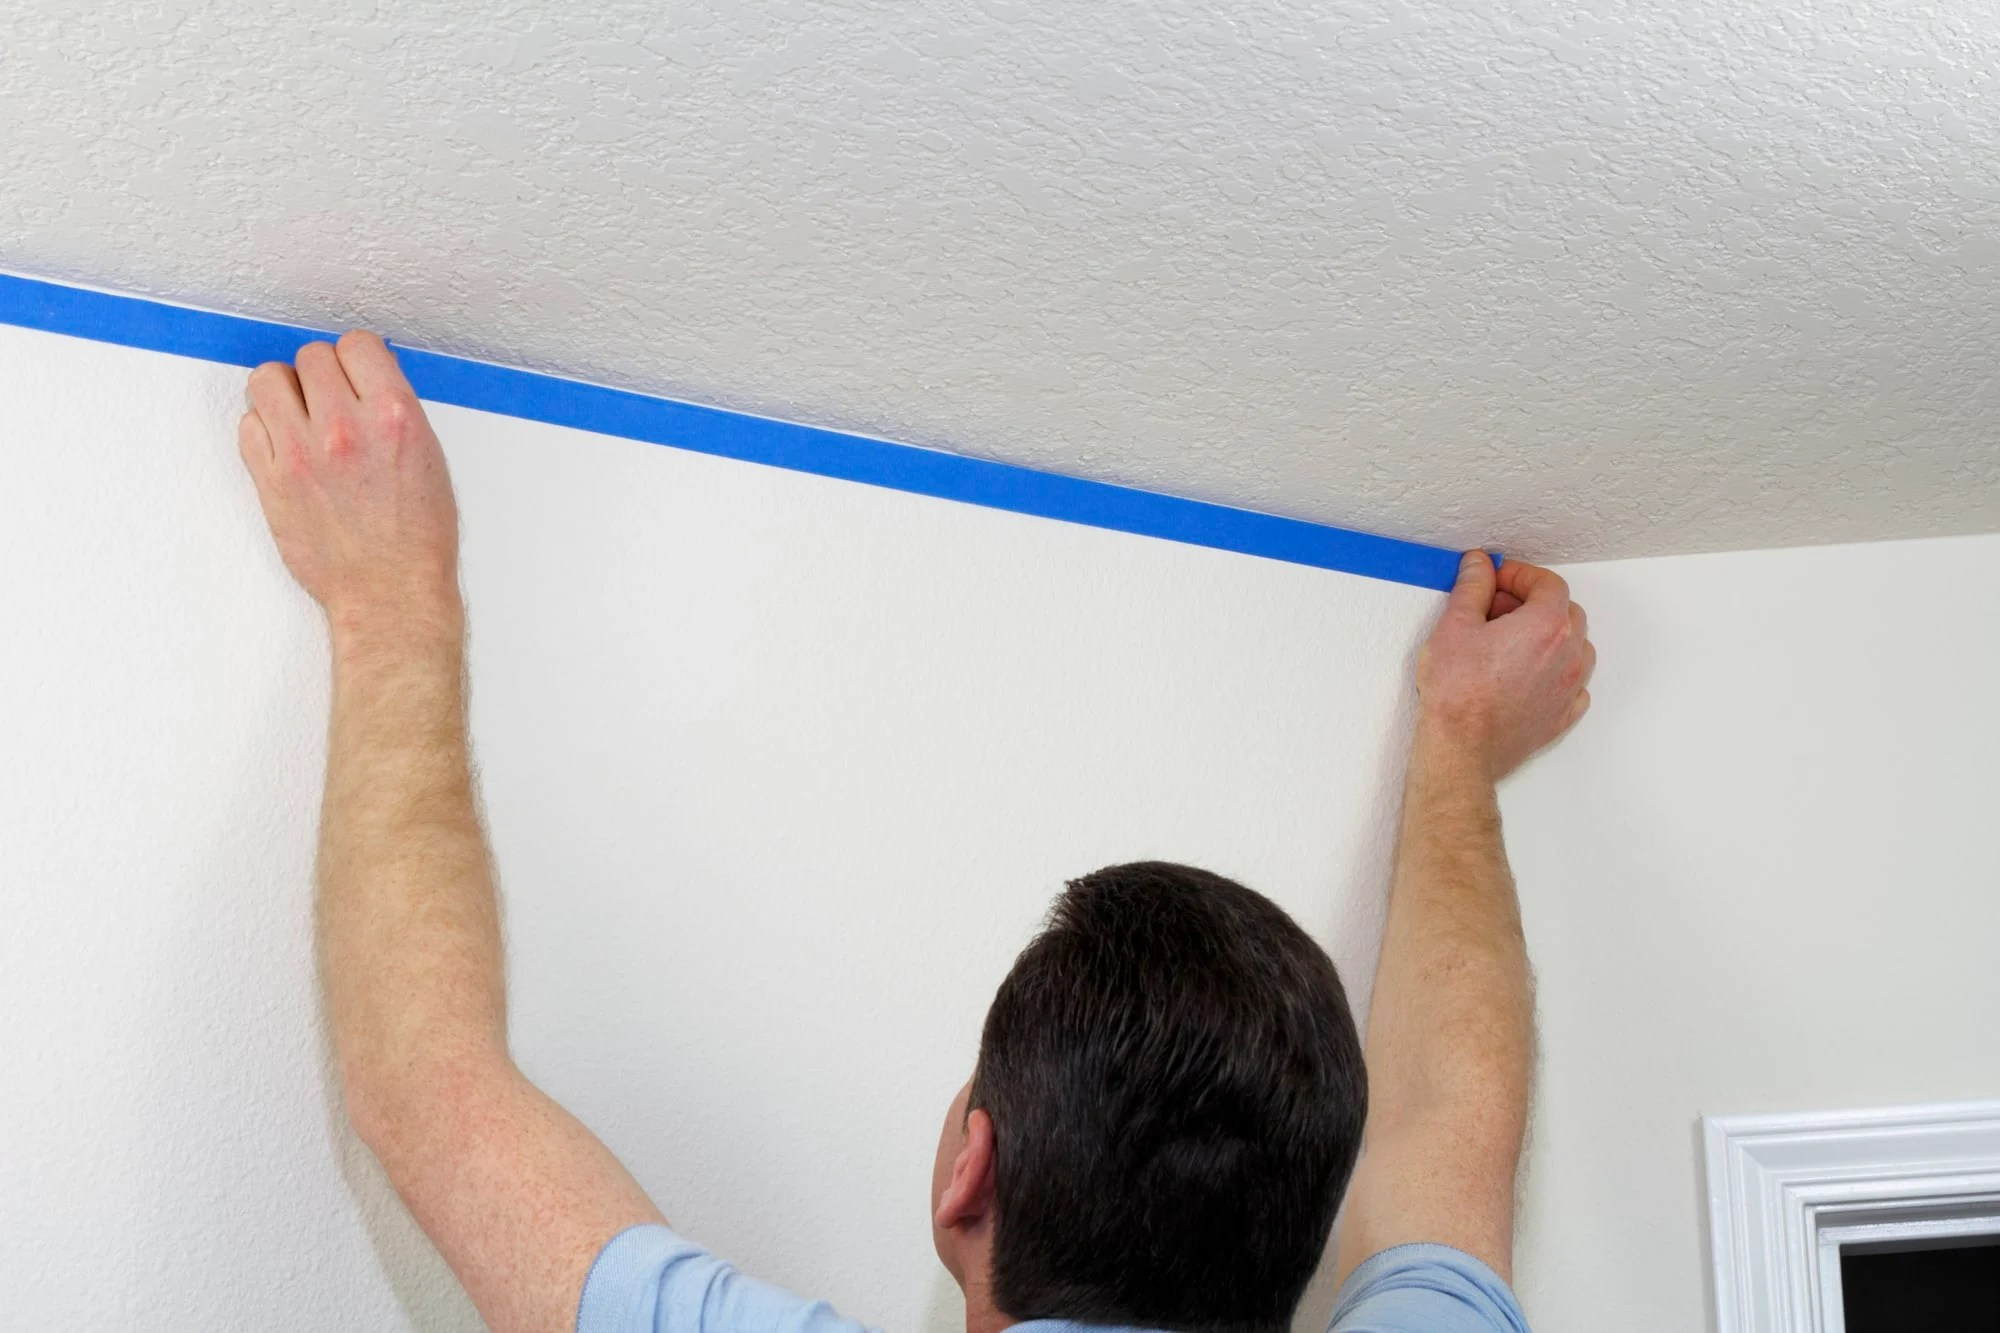 appy painter's tape to the ceiling and baseboards before painting